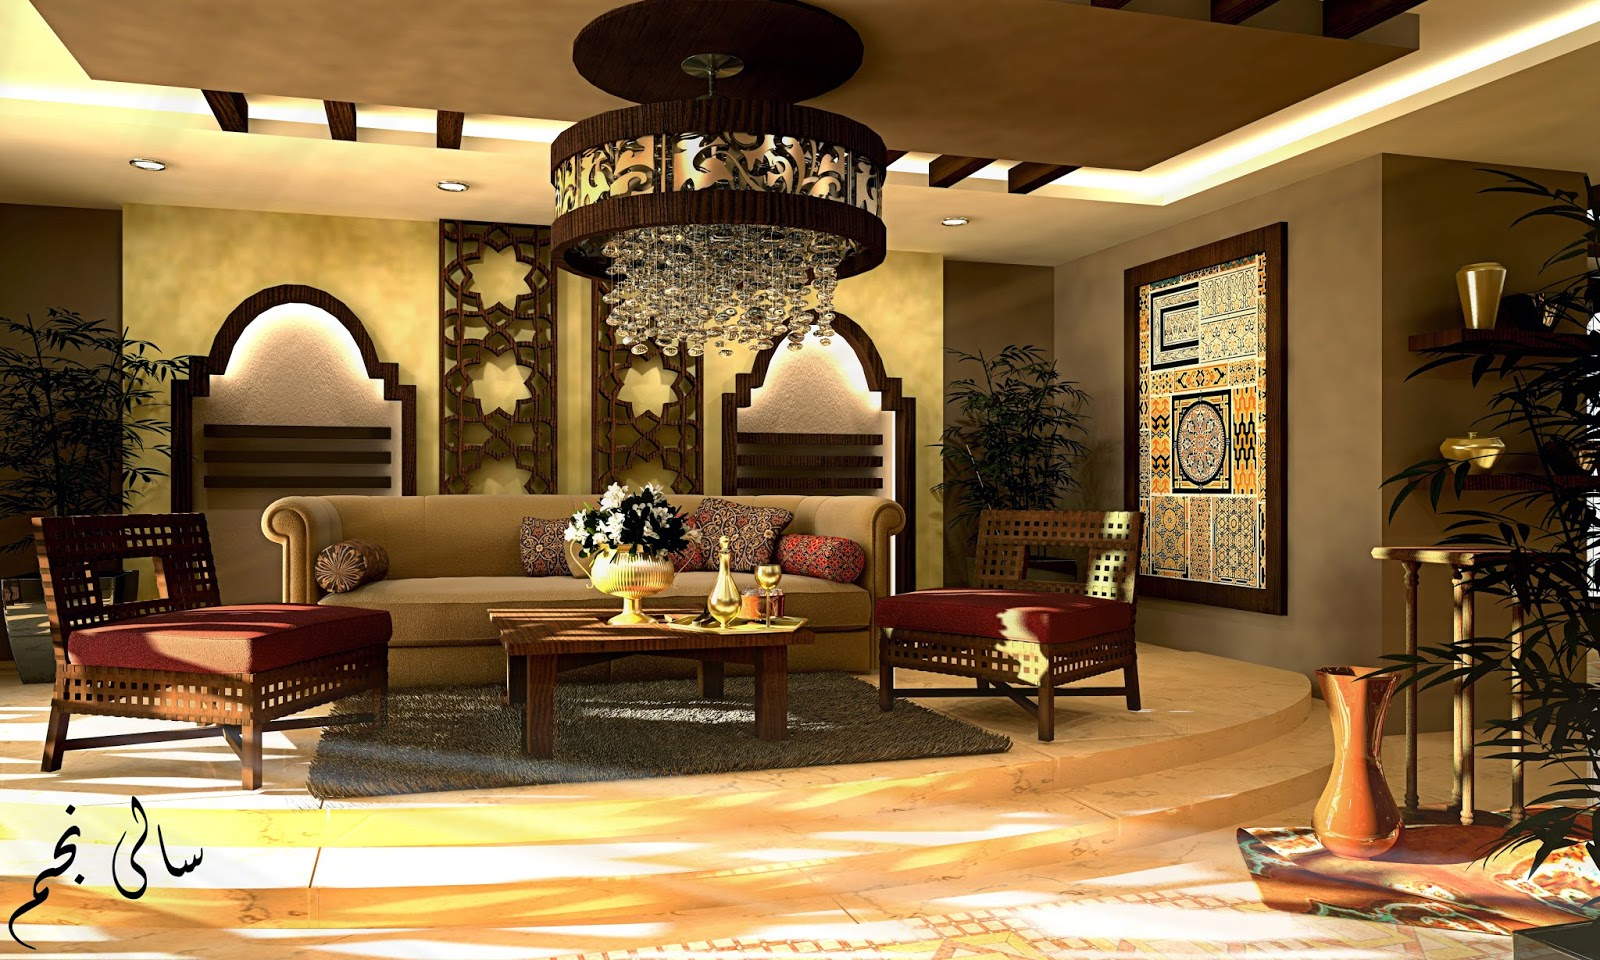 Islamic Interior Design Set For Love Of Interior Design   My Designs